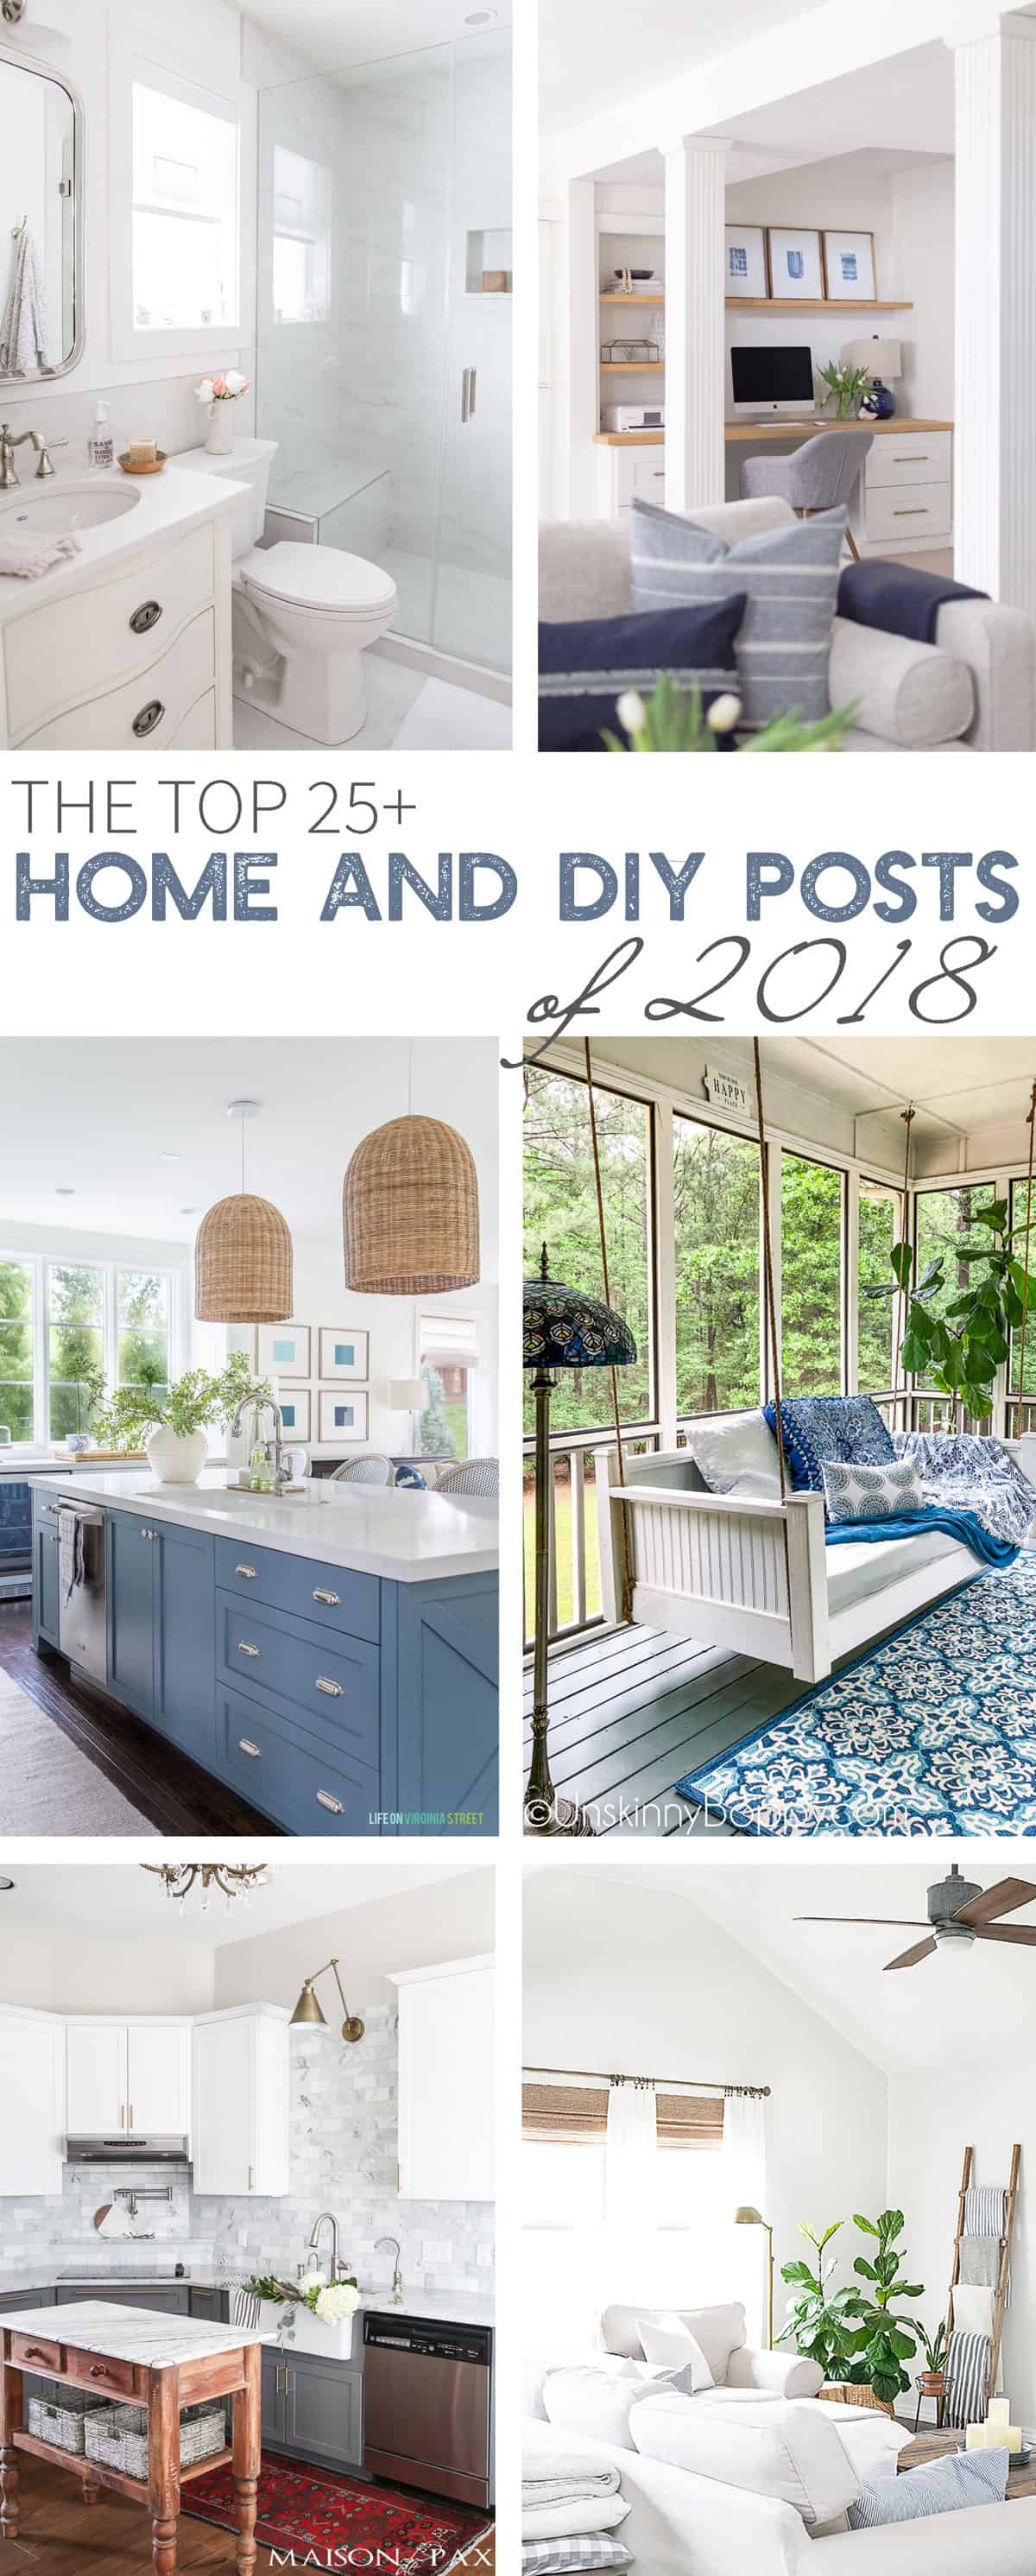 The Top DIY of 2018